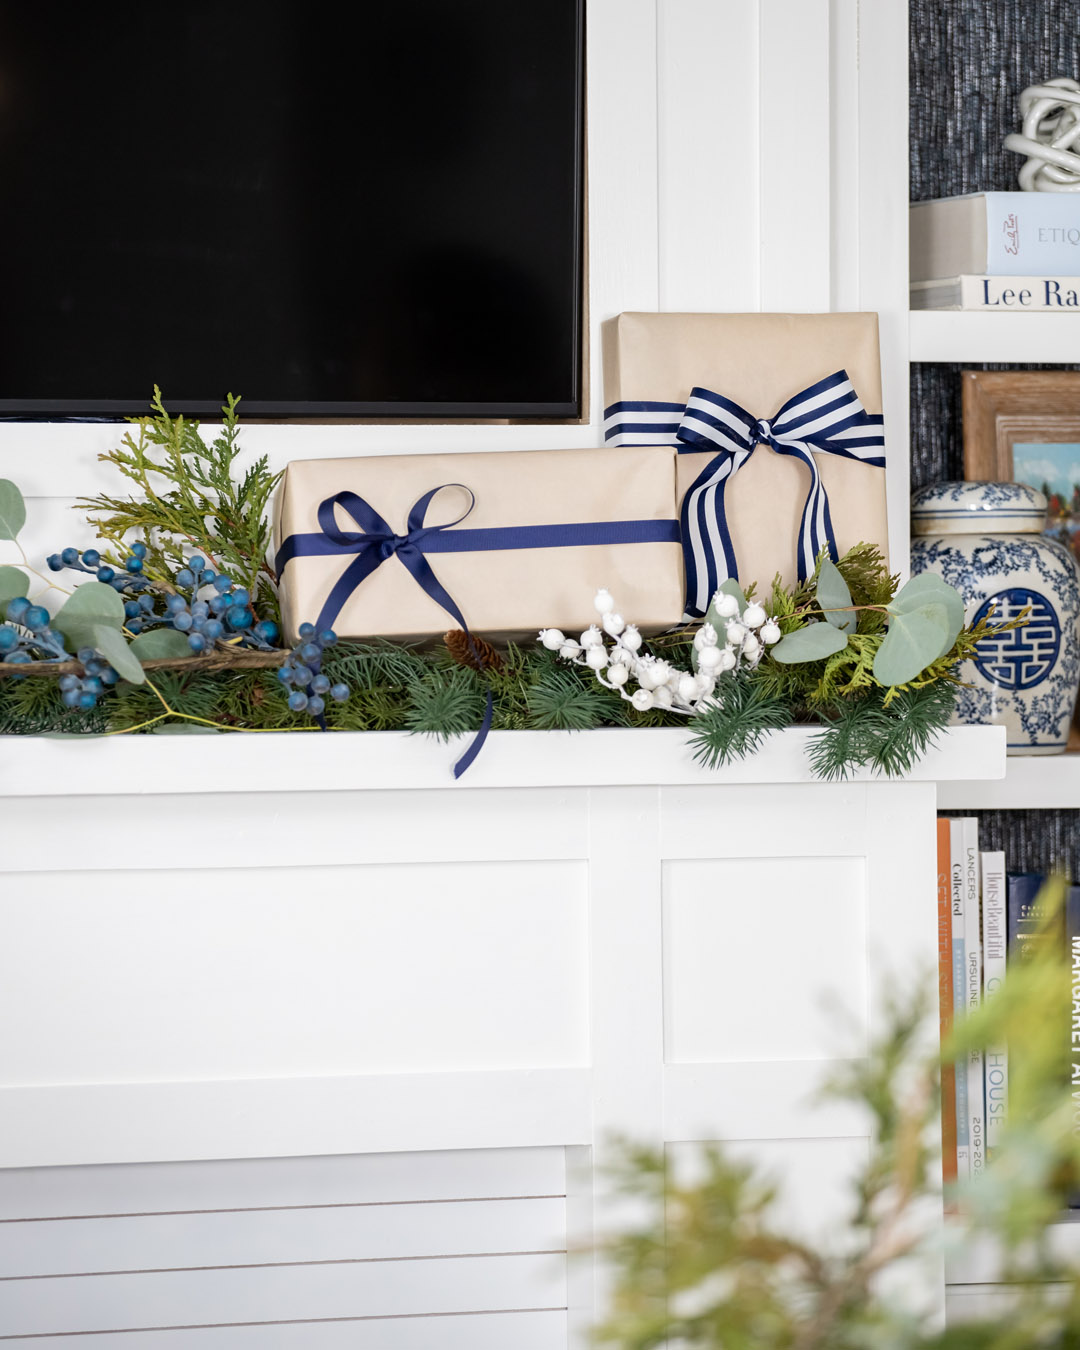 If you're finding that your Christmas decor doesn't look quite right to you for some reason, and you struggle to figure out what you're doing wrong year after year, the solution might be much simpler than you realize!